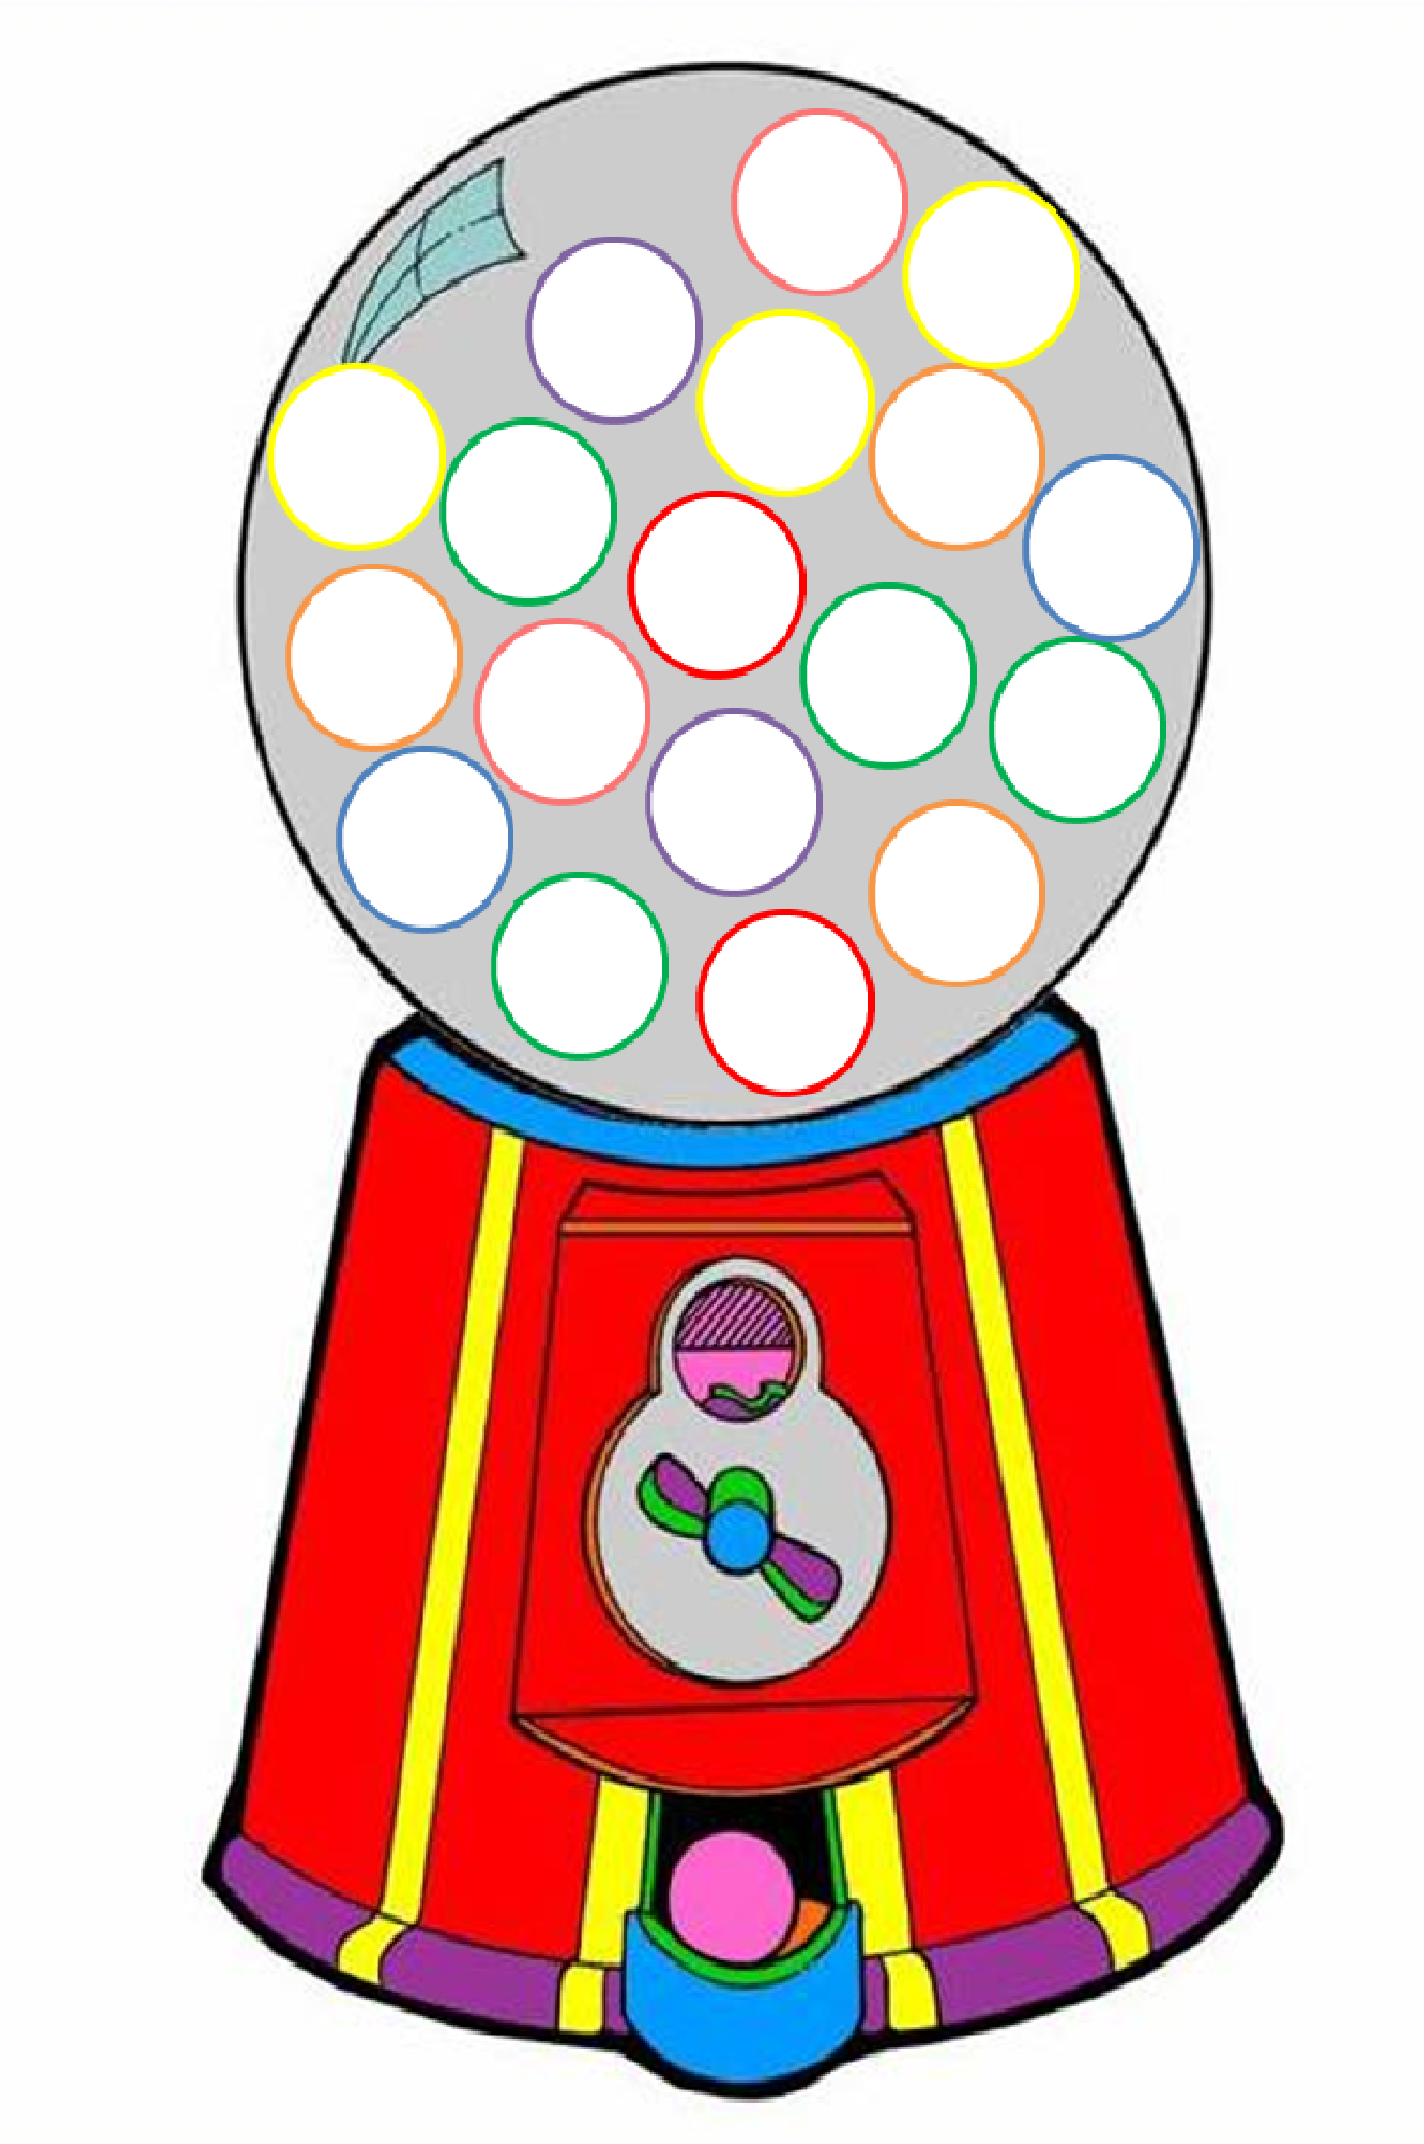 Gumball Machine Clipart Free Cliparts That You Can GooseGorilla Clipart To You